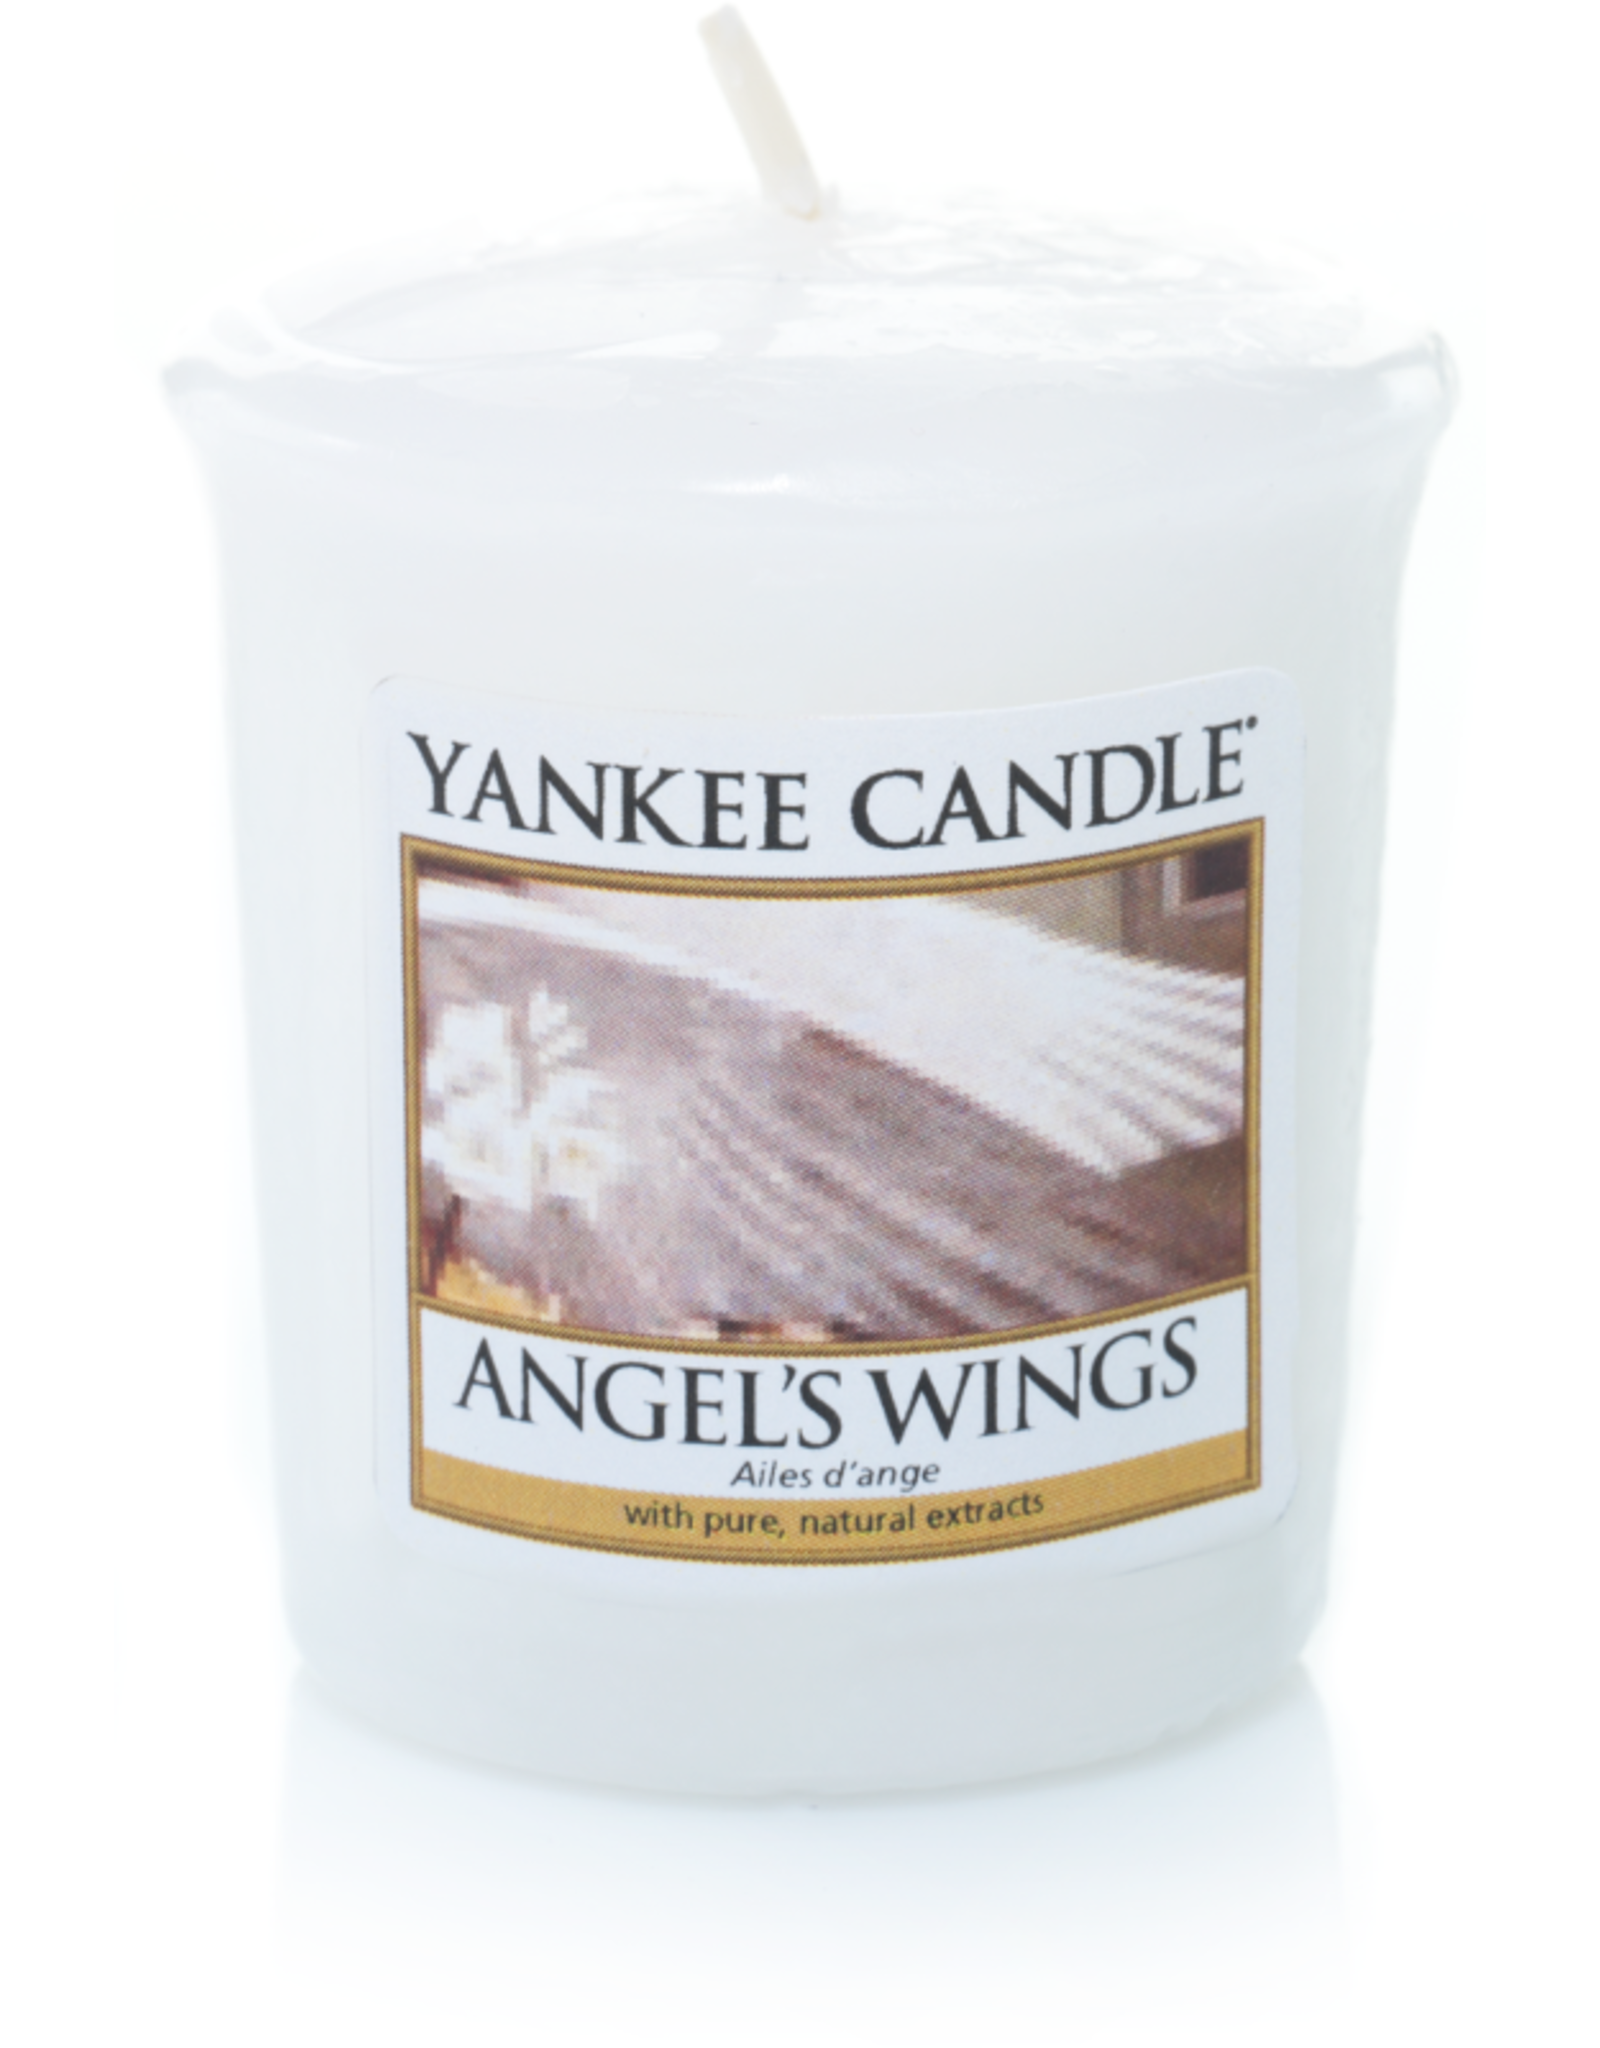 Yankee Candle Angel's Wings Votive